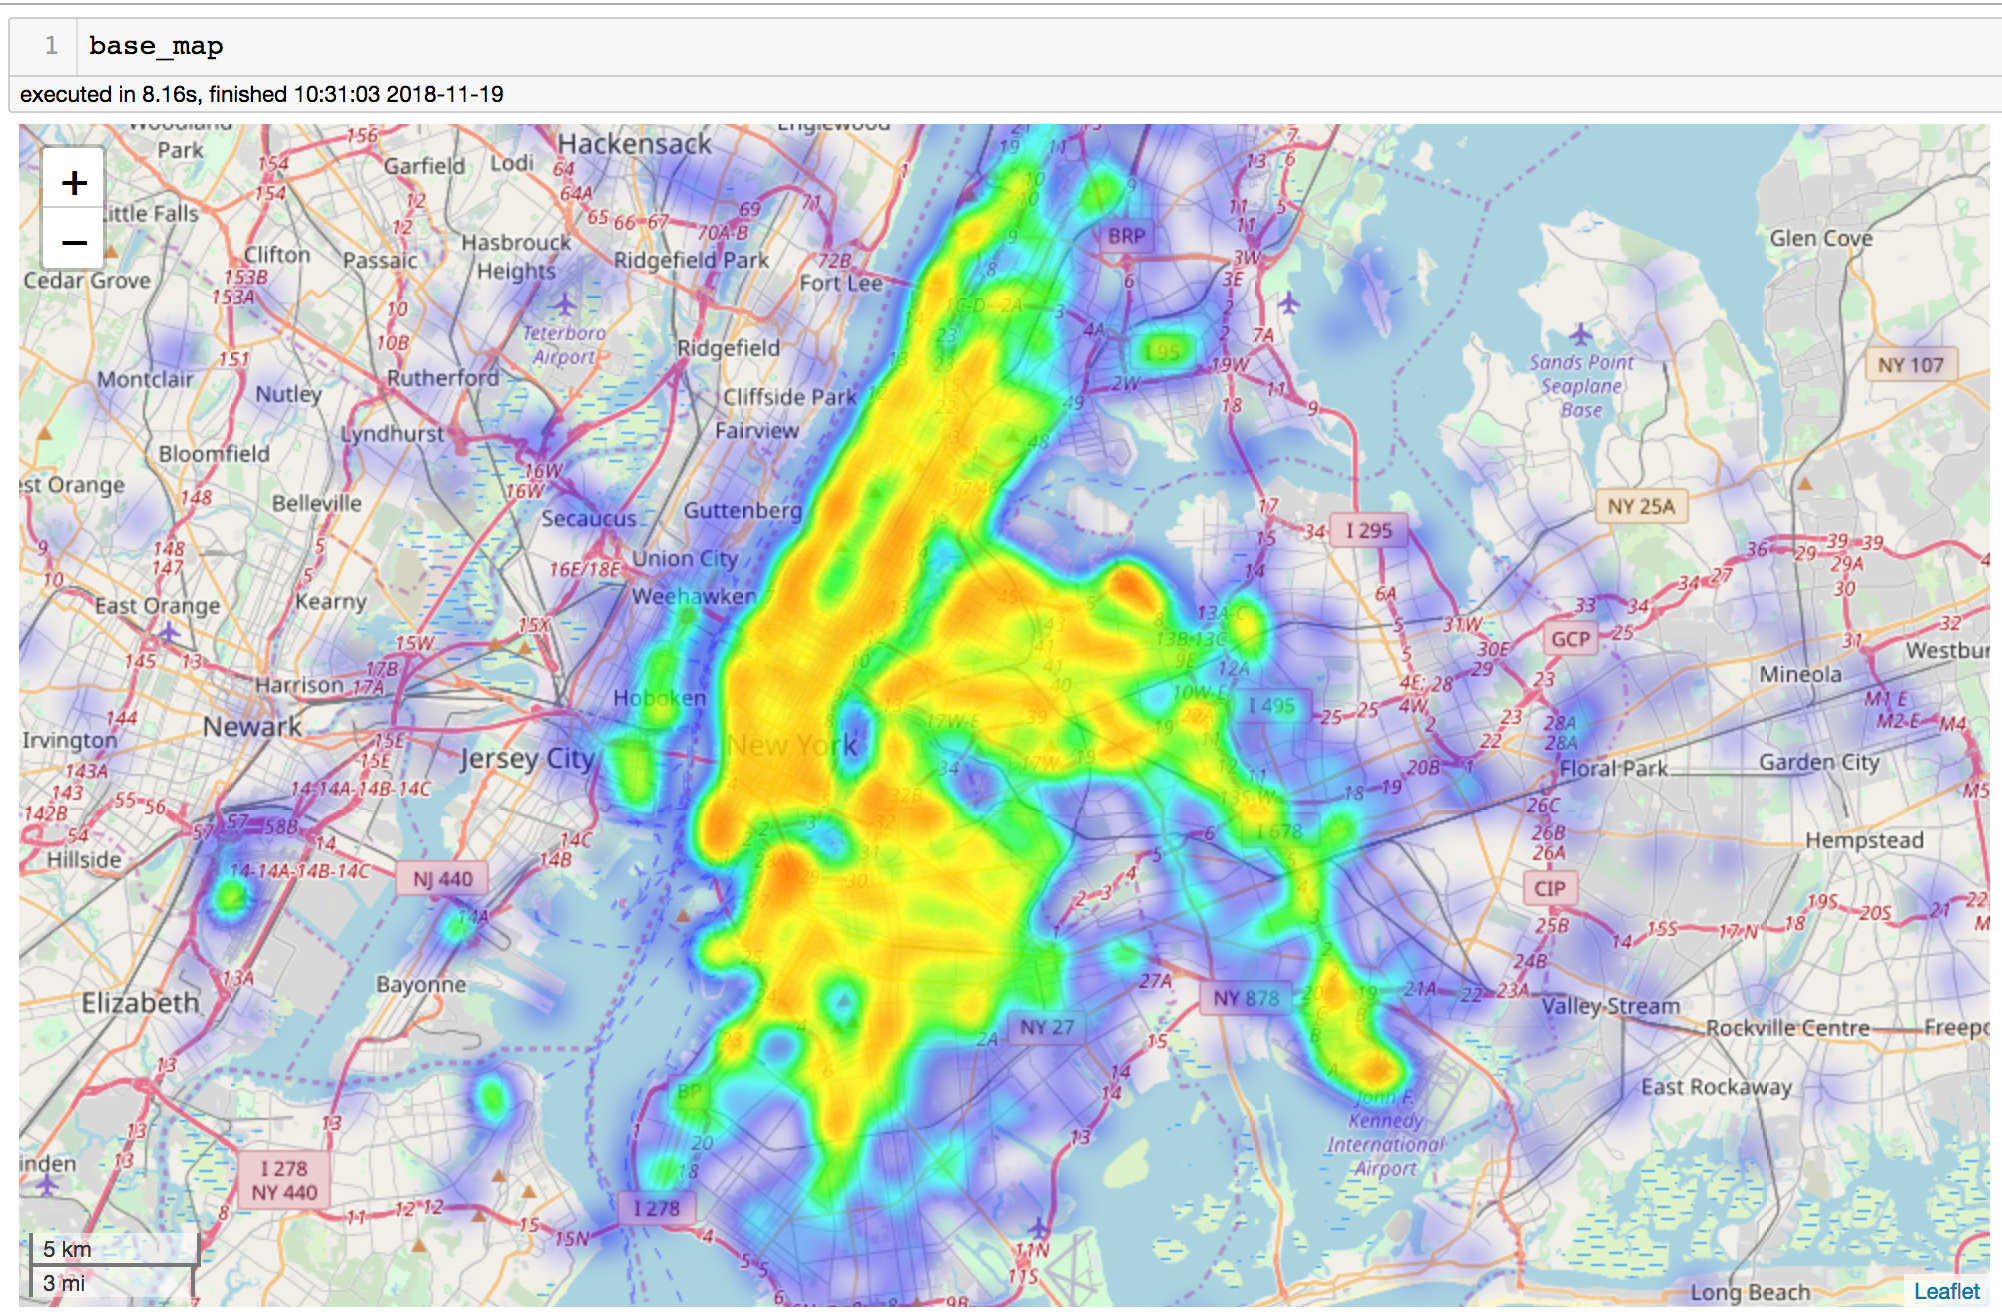 Spatial Visualizations and Analysis in Python with Folium